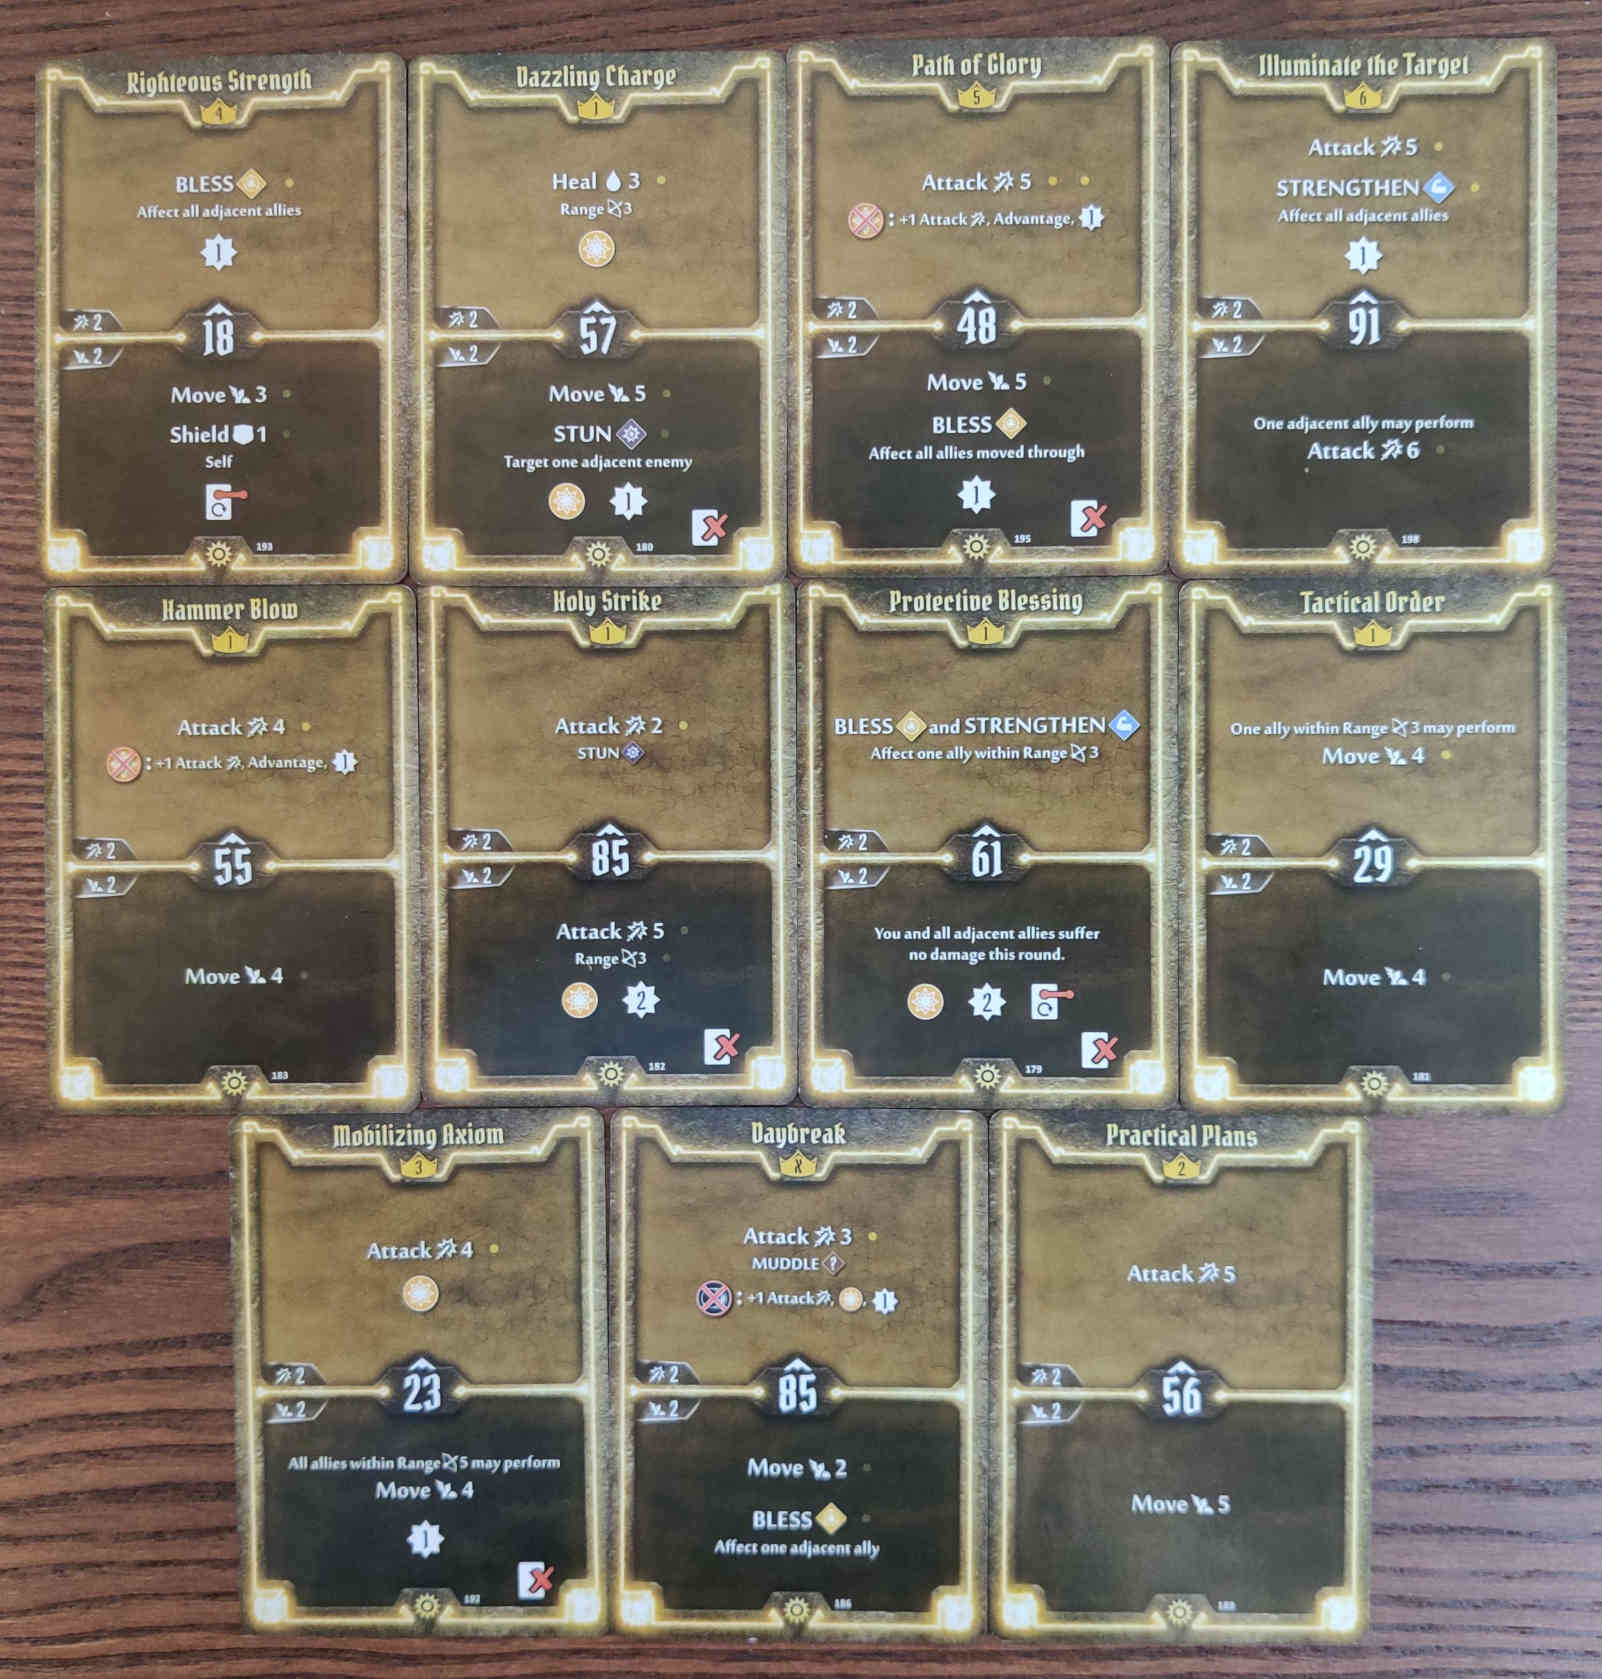 Gloomhaven Sunkeeper Damage Build Level 6 cards